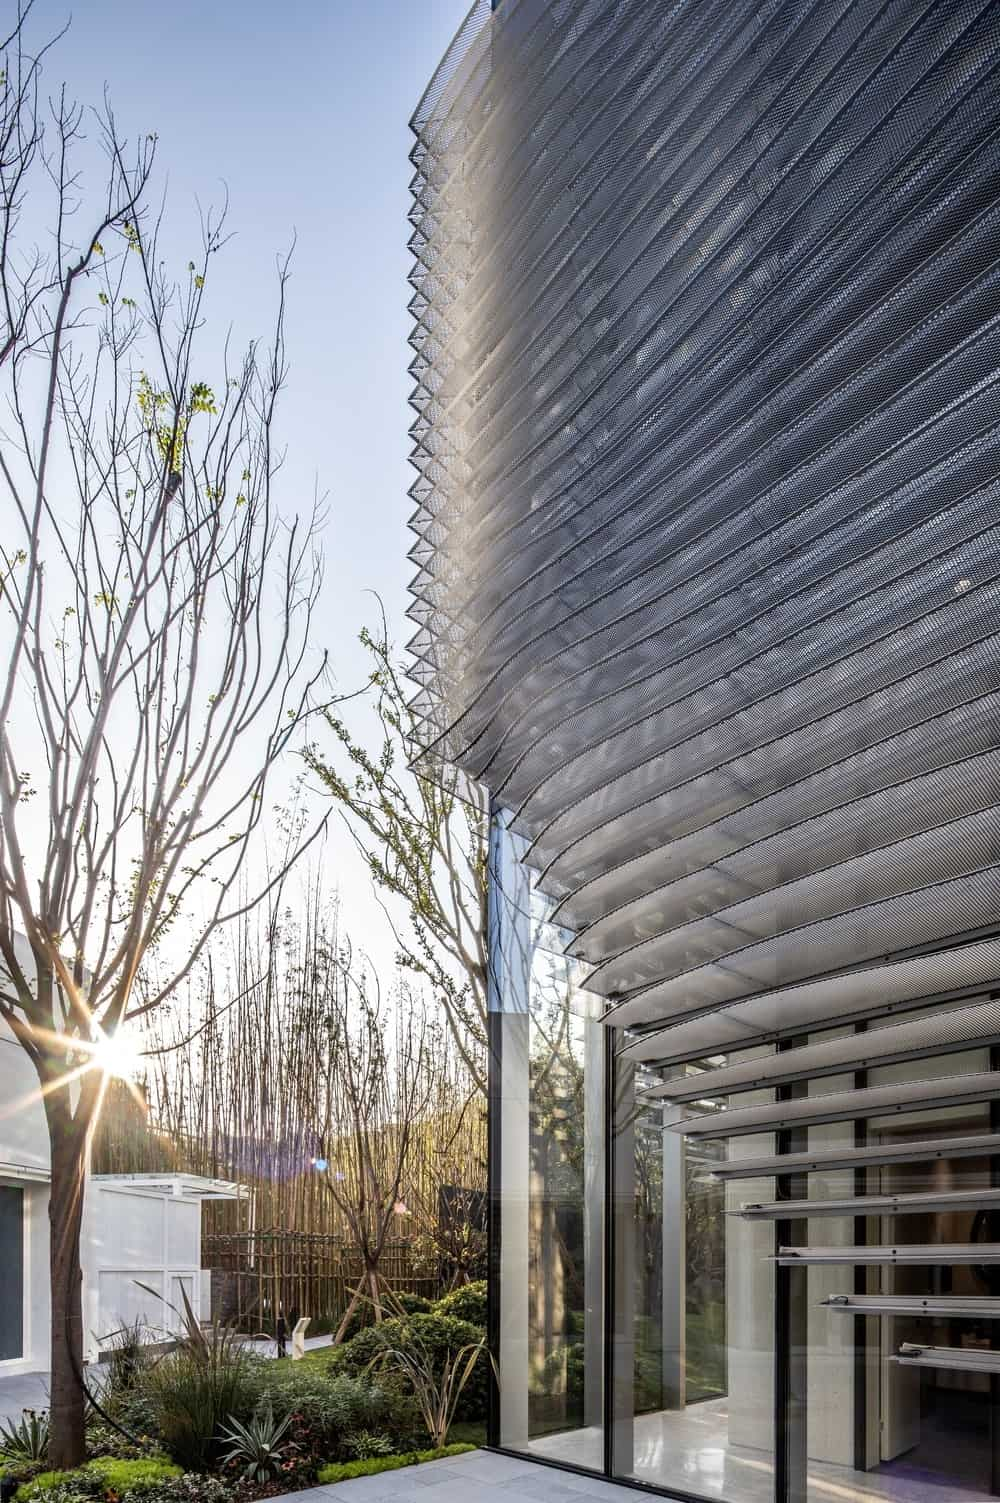 This is a view of the zen-like landscape that pairs quite well with the modern look of the glass building.